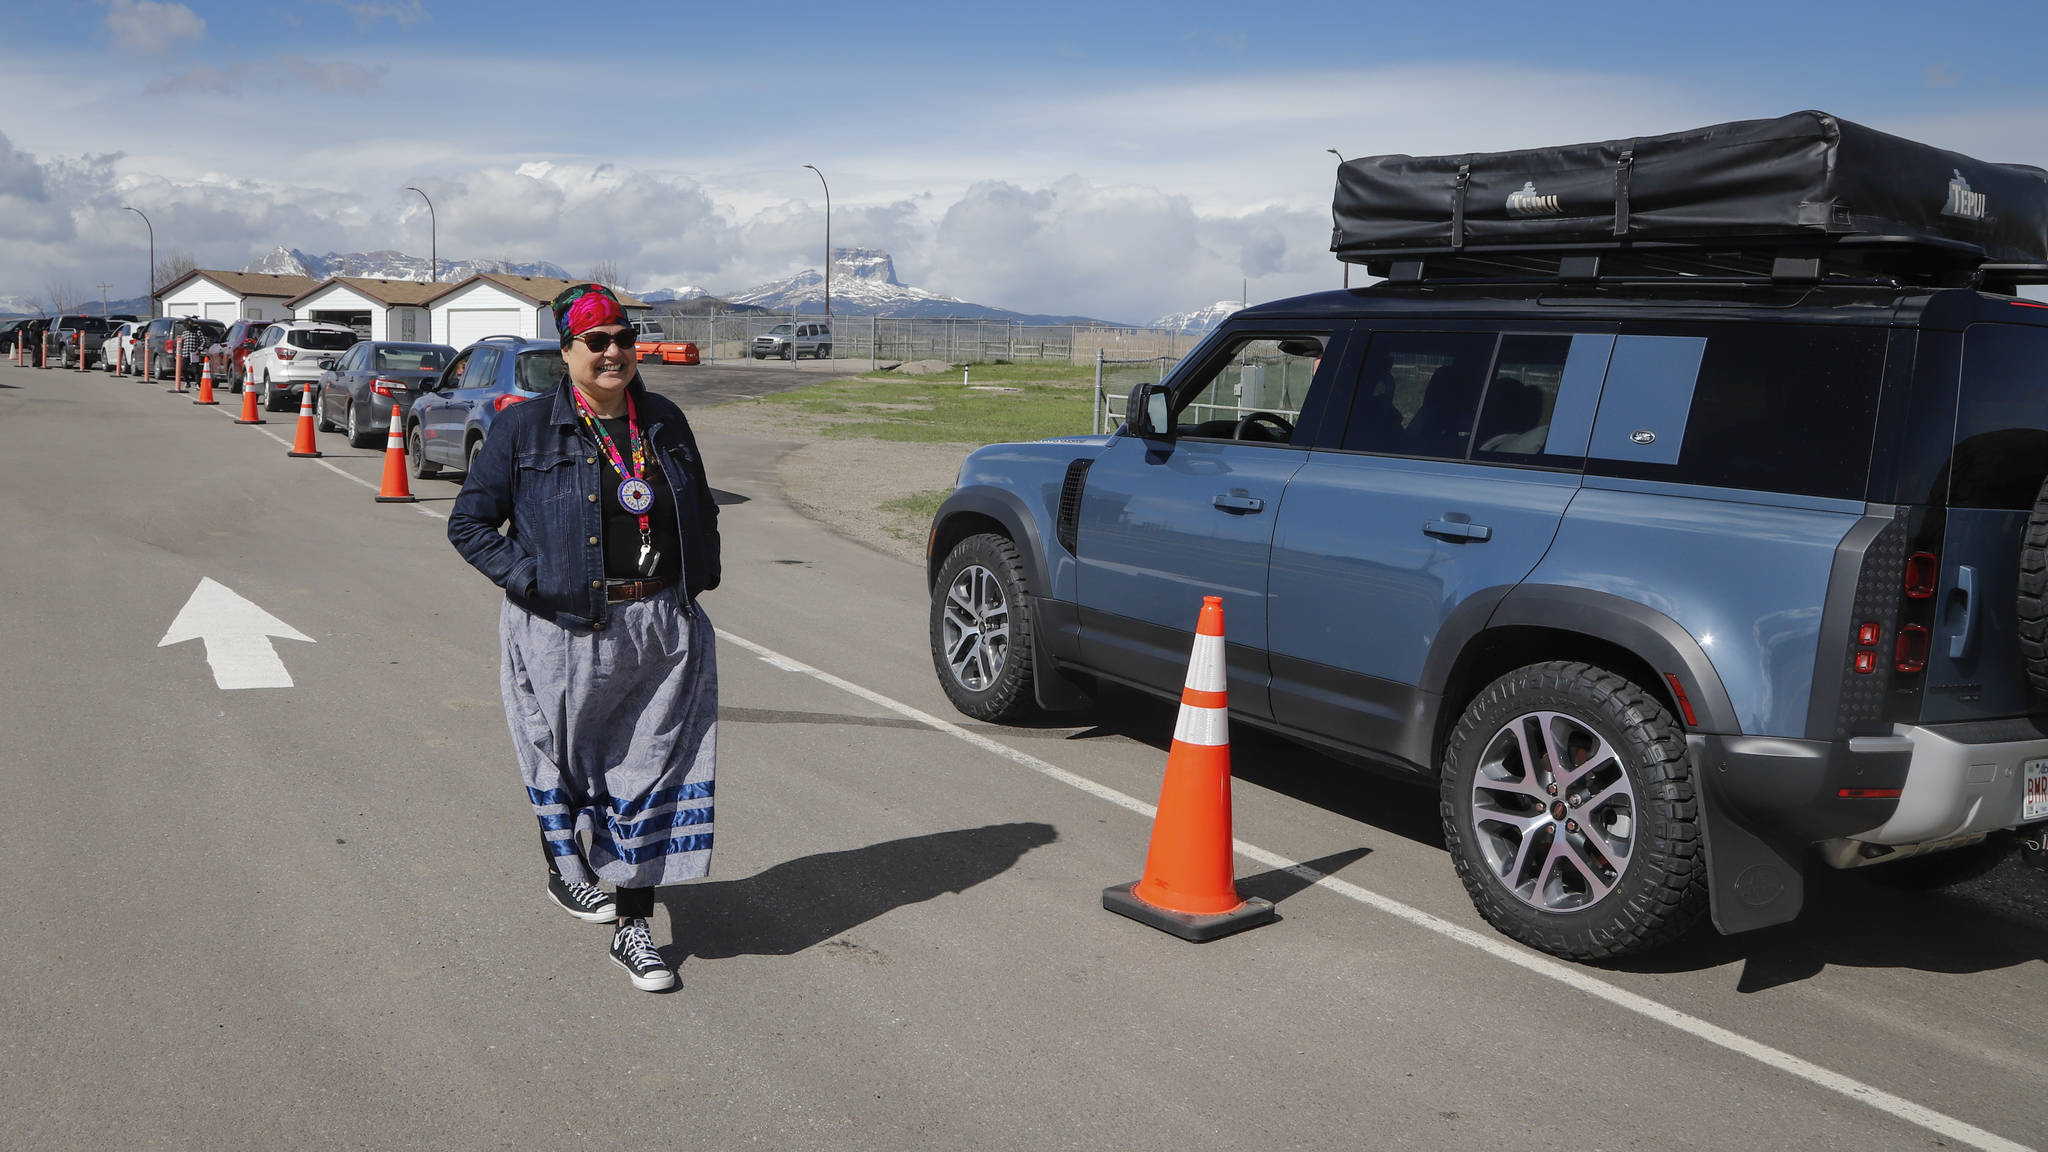 Bonnie Healey, health director for the Blackfoot Confederacy, chats with southern Alberta residents lining up to get shots of a COVID-19 vaccine from a Montana tribe in Carway, Alta., Tuesday, May 18, 2021. THE CANADIAN PRESS/Jeff McIntosh